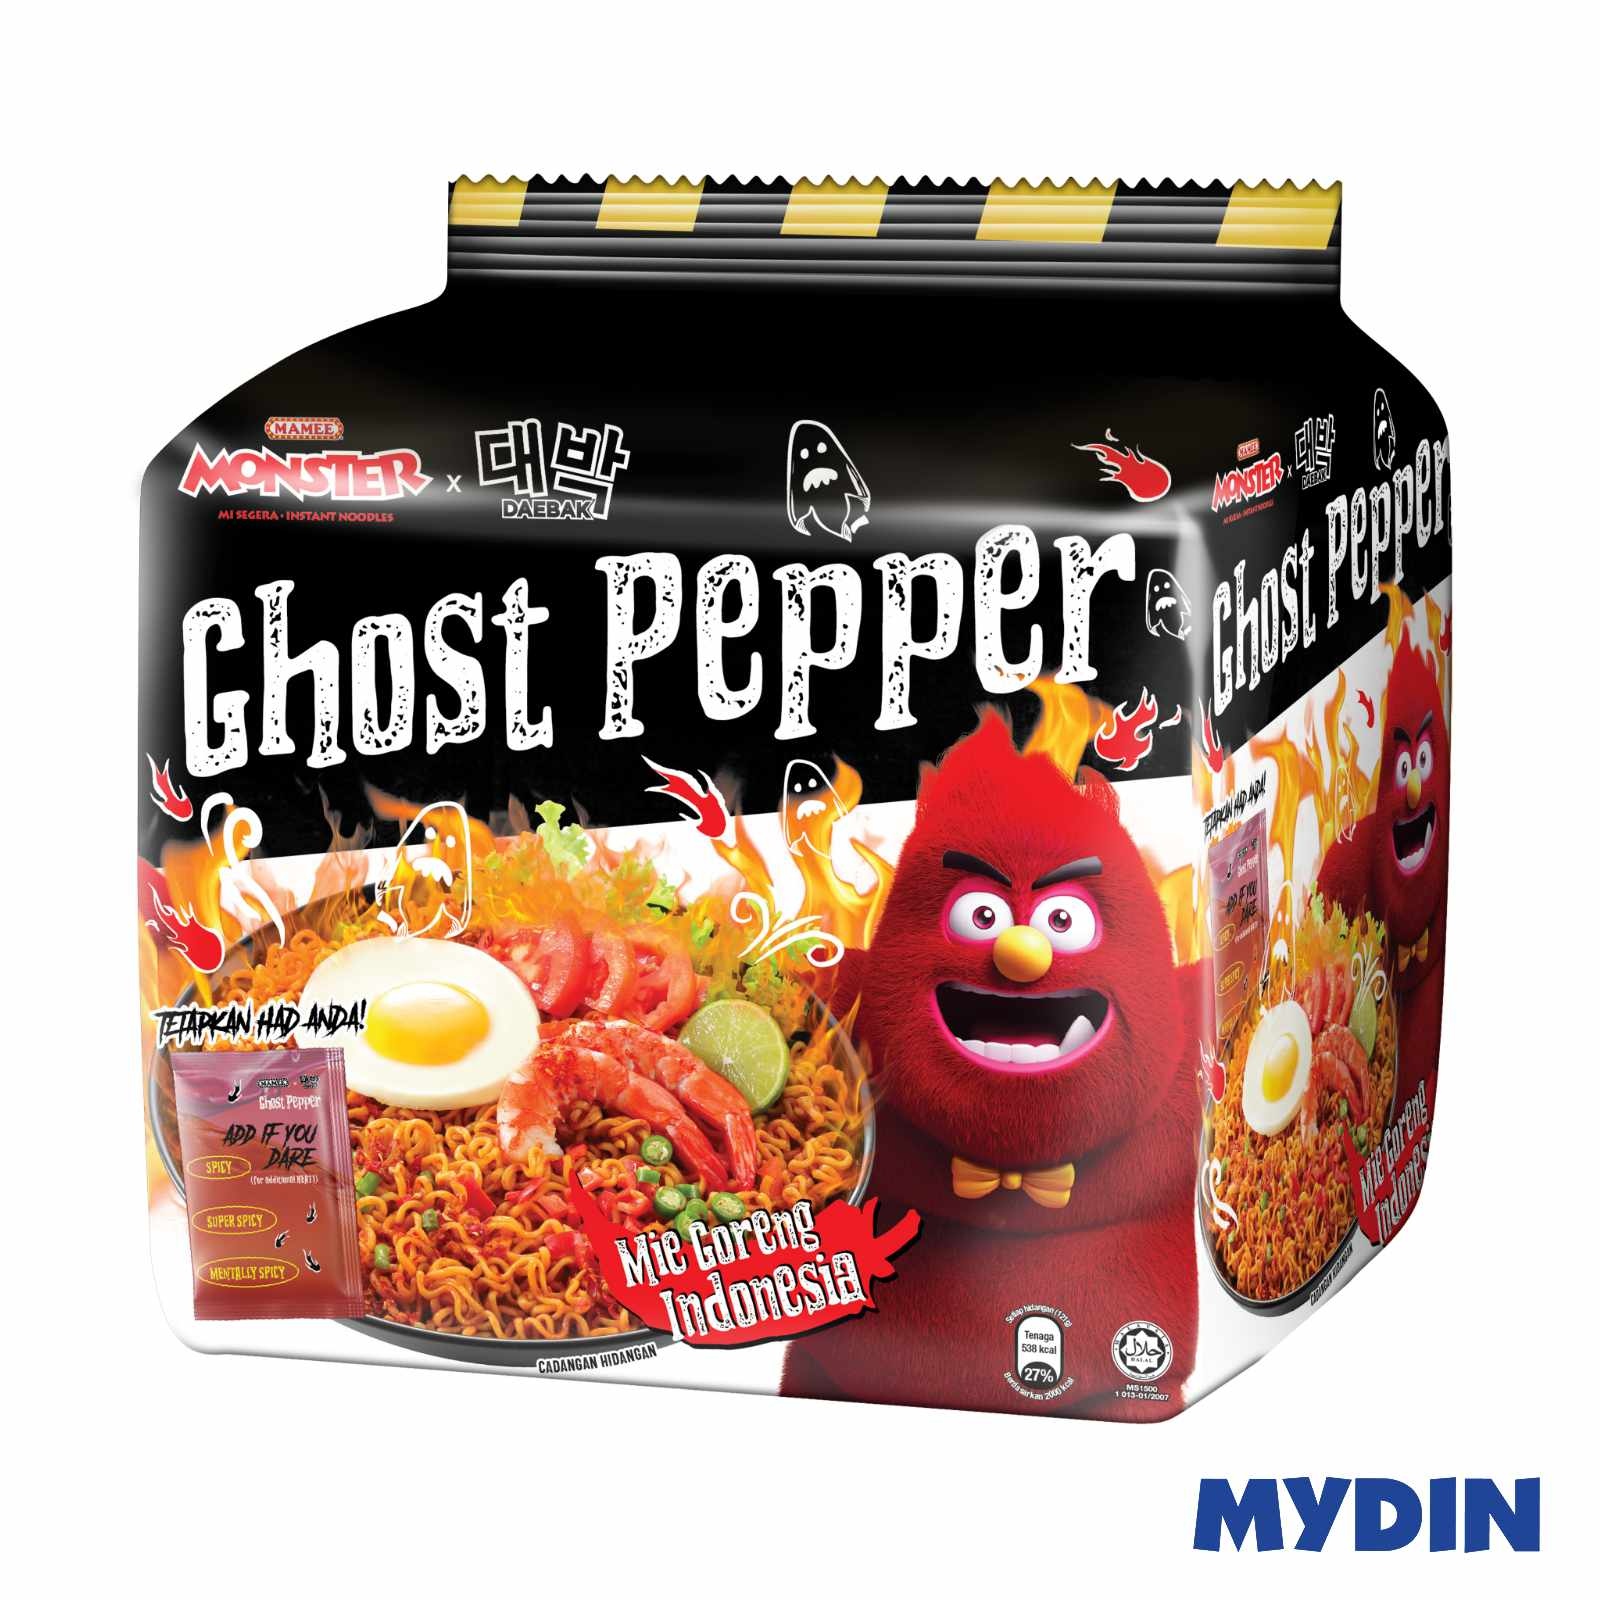 Mamee Monster Ghost Pepper (4x121g) - Mie Goreng Indonesia